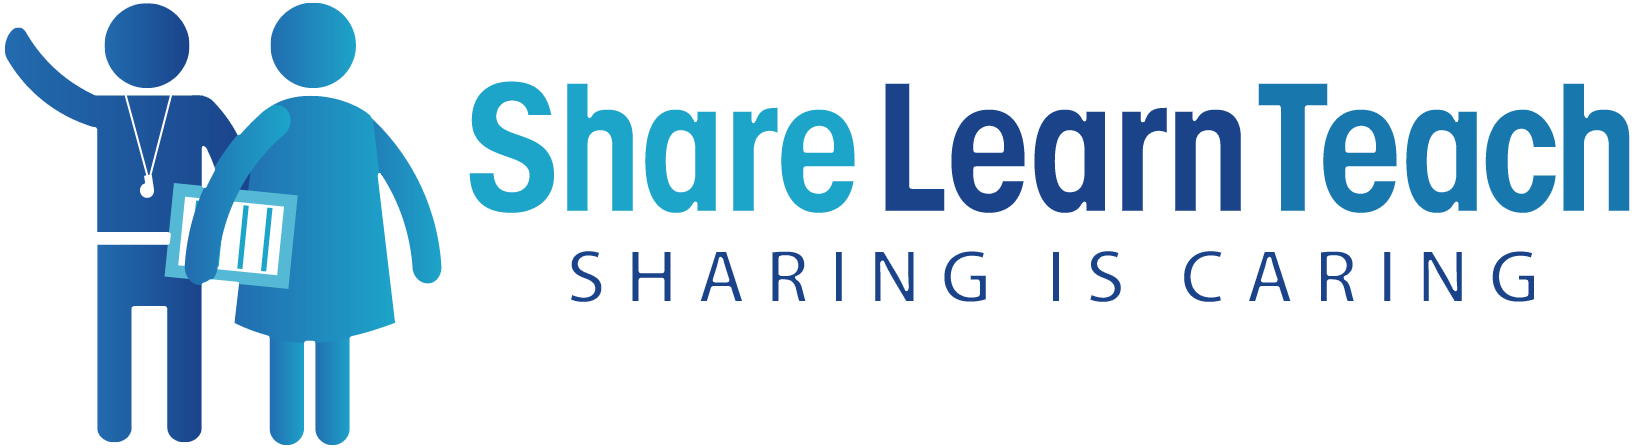 Share Learn Teach